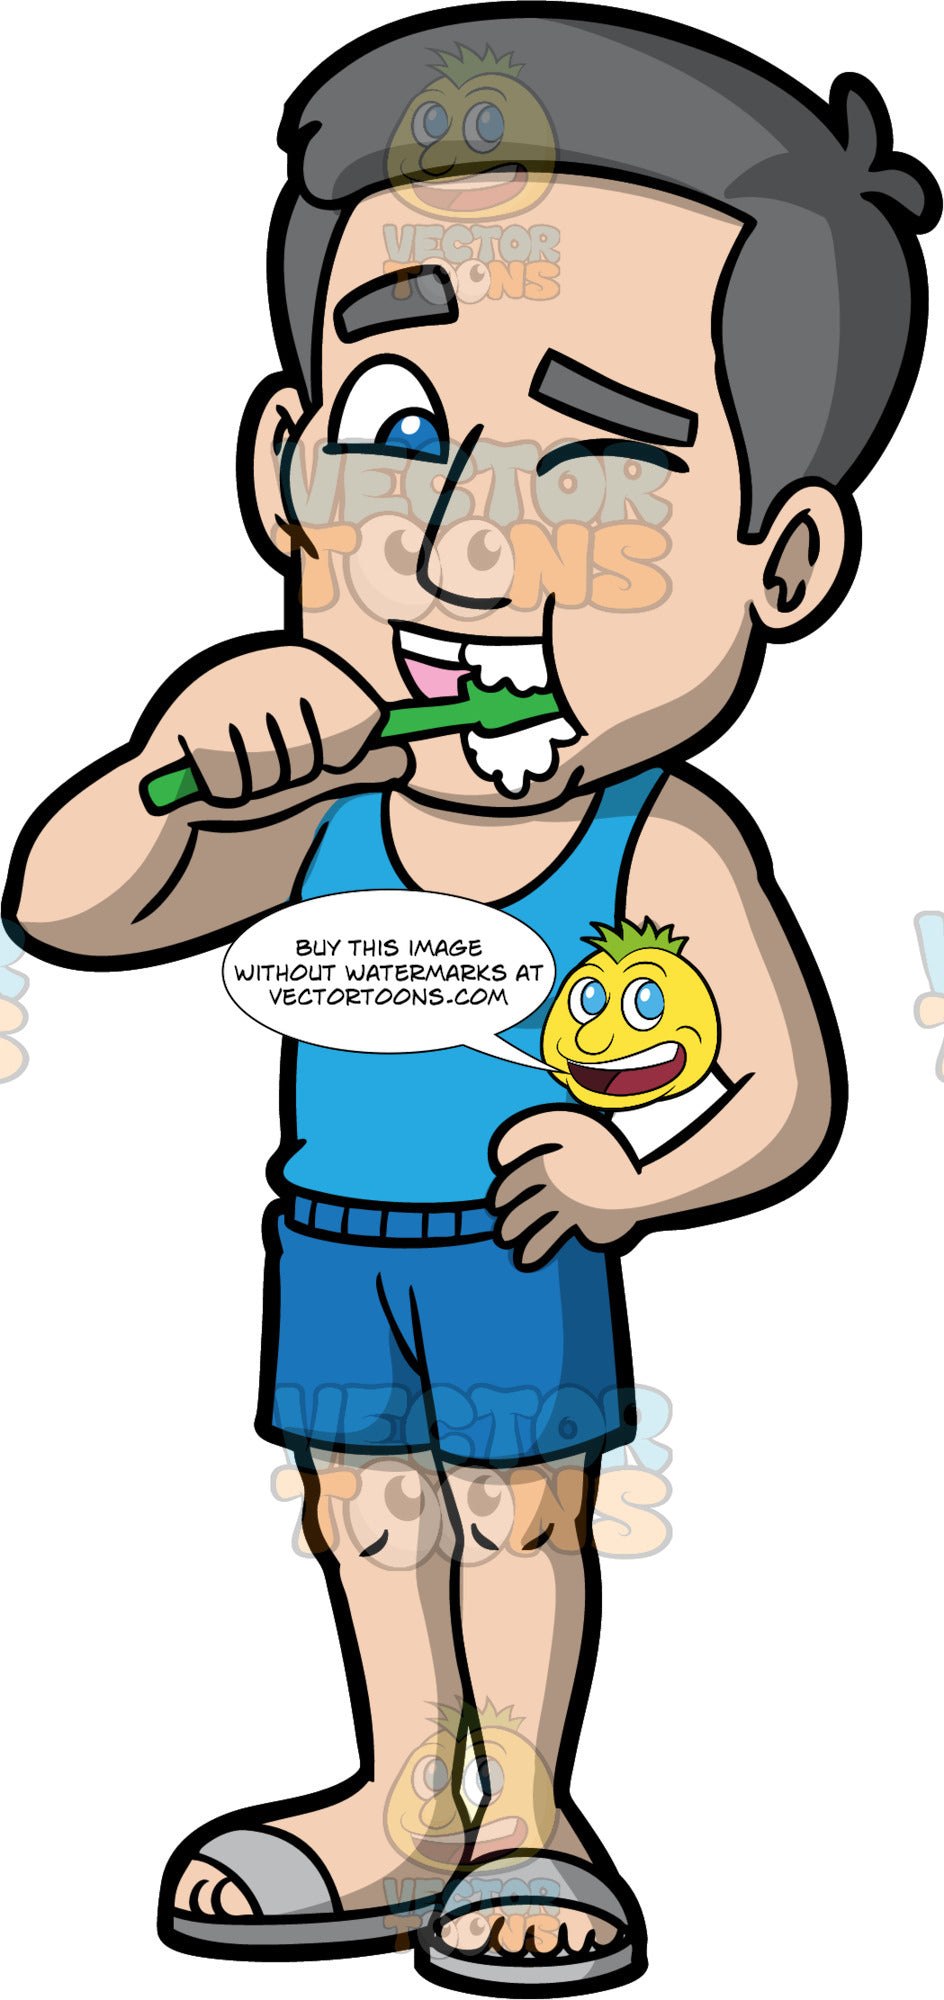 Bob Brushing His Teeth. A mature man wearing blue shorts, a blue tank top, and gray sandals, standing with one hand on his hip while brushing his teeth